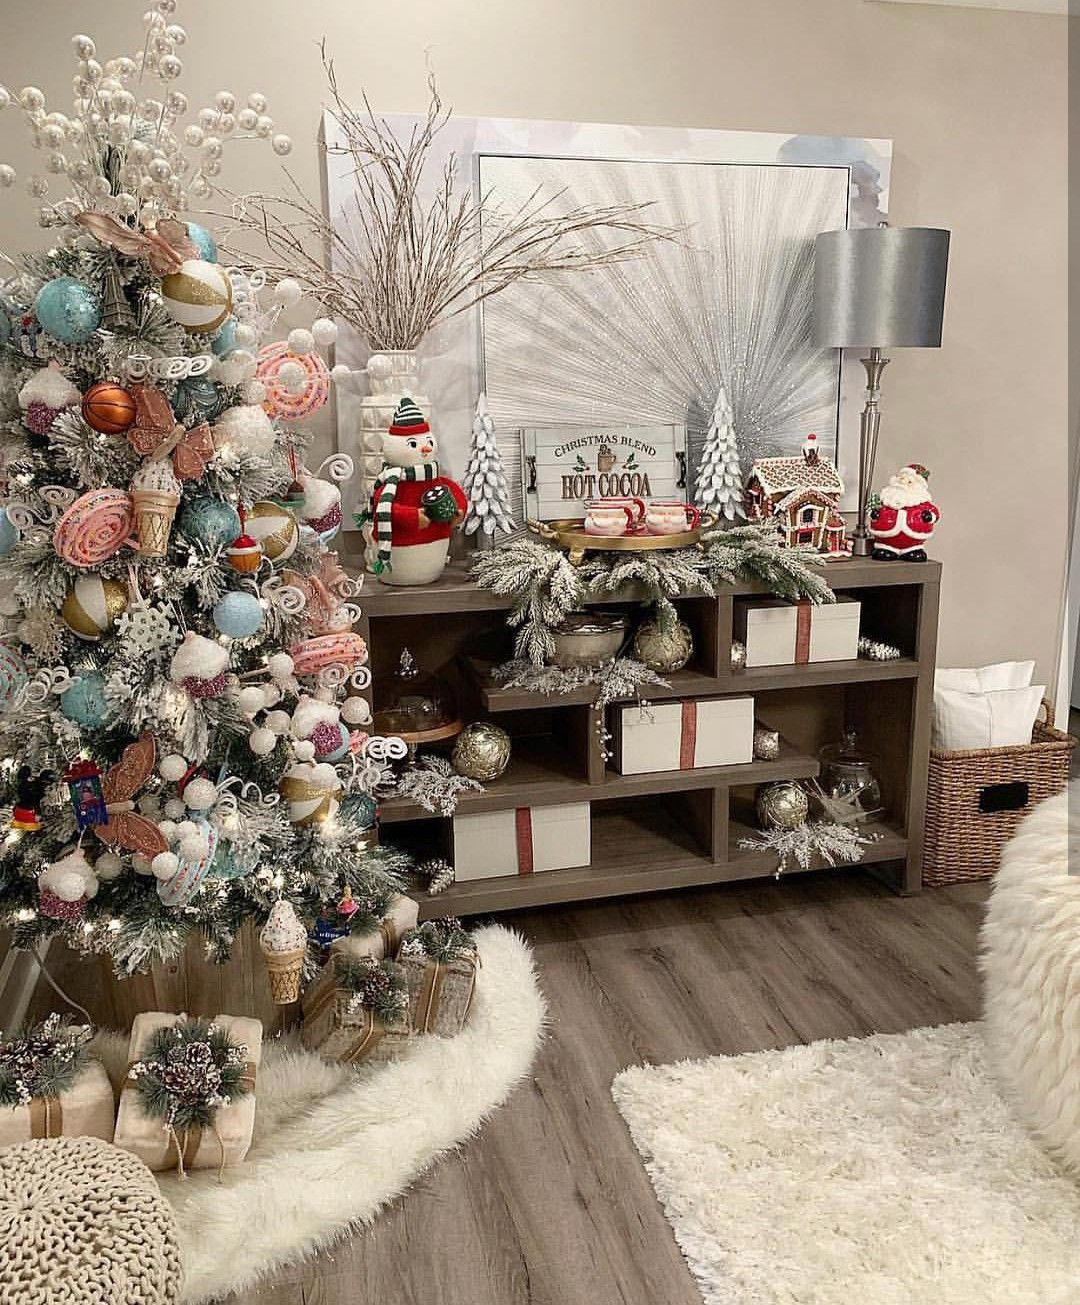 The Best Holiday Decor Finds Online And A New Holiday Decor Online Store 11 Magnolia Lane In 2020 Affordable Holiday Decor Classic Christmas Decorations Holiday Decor